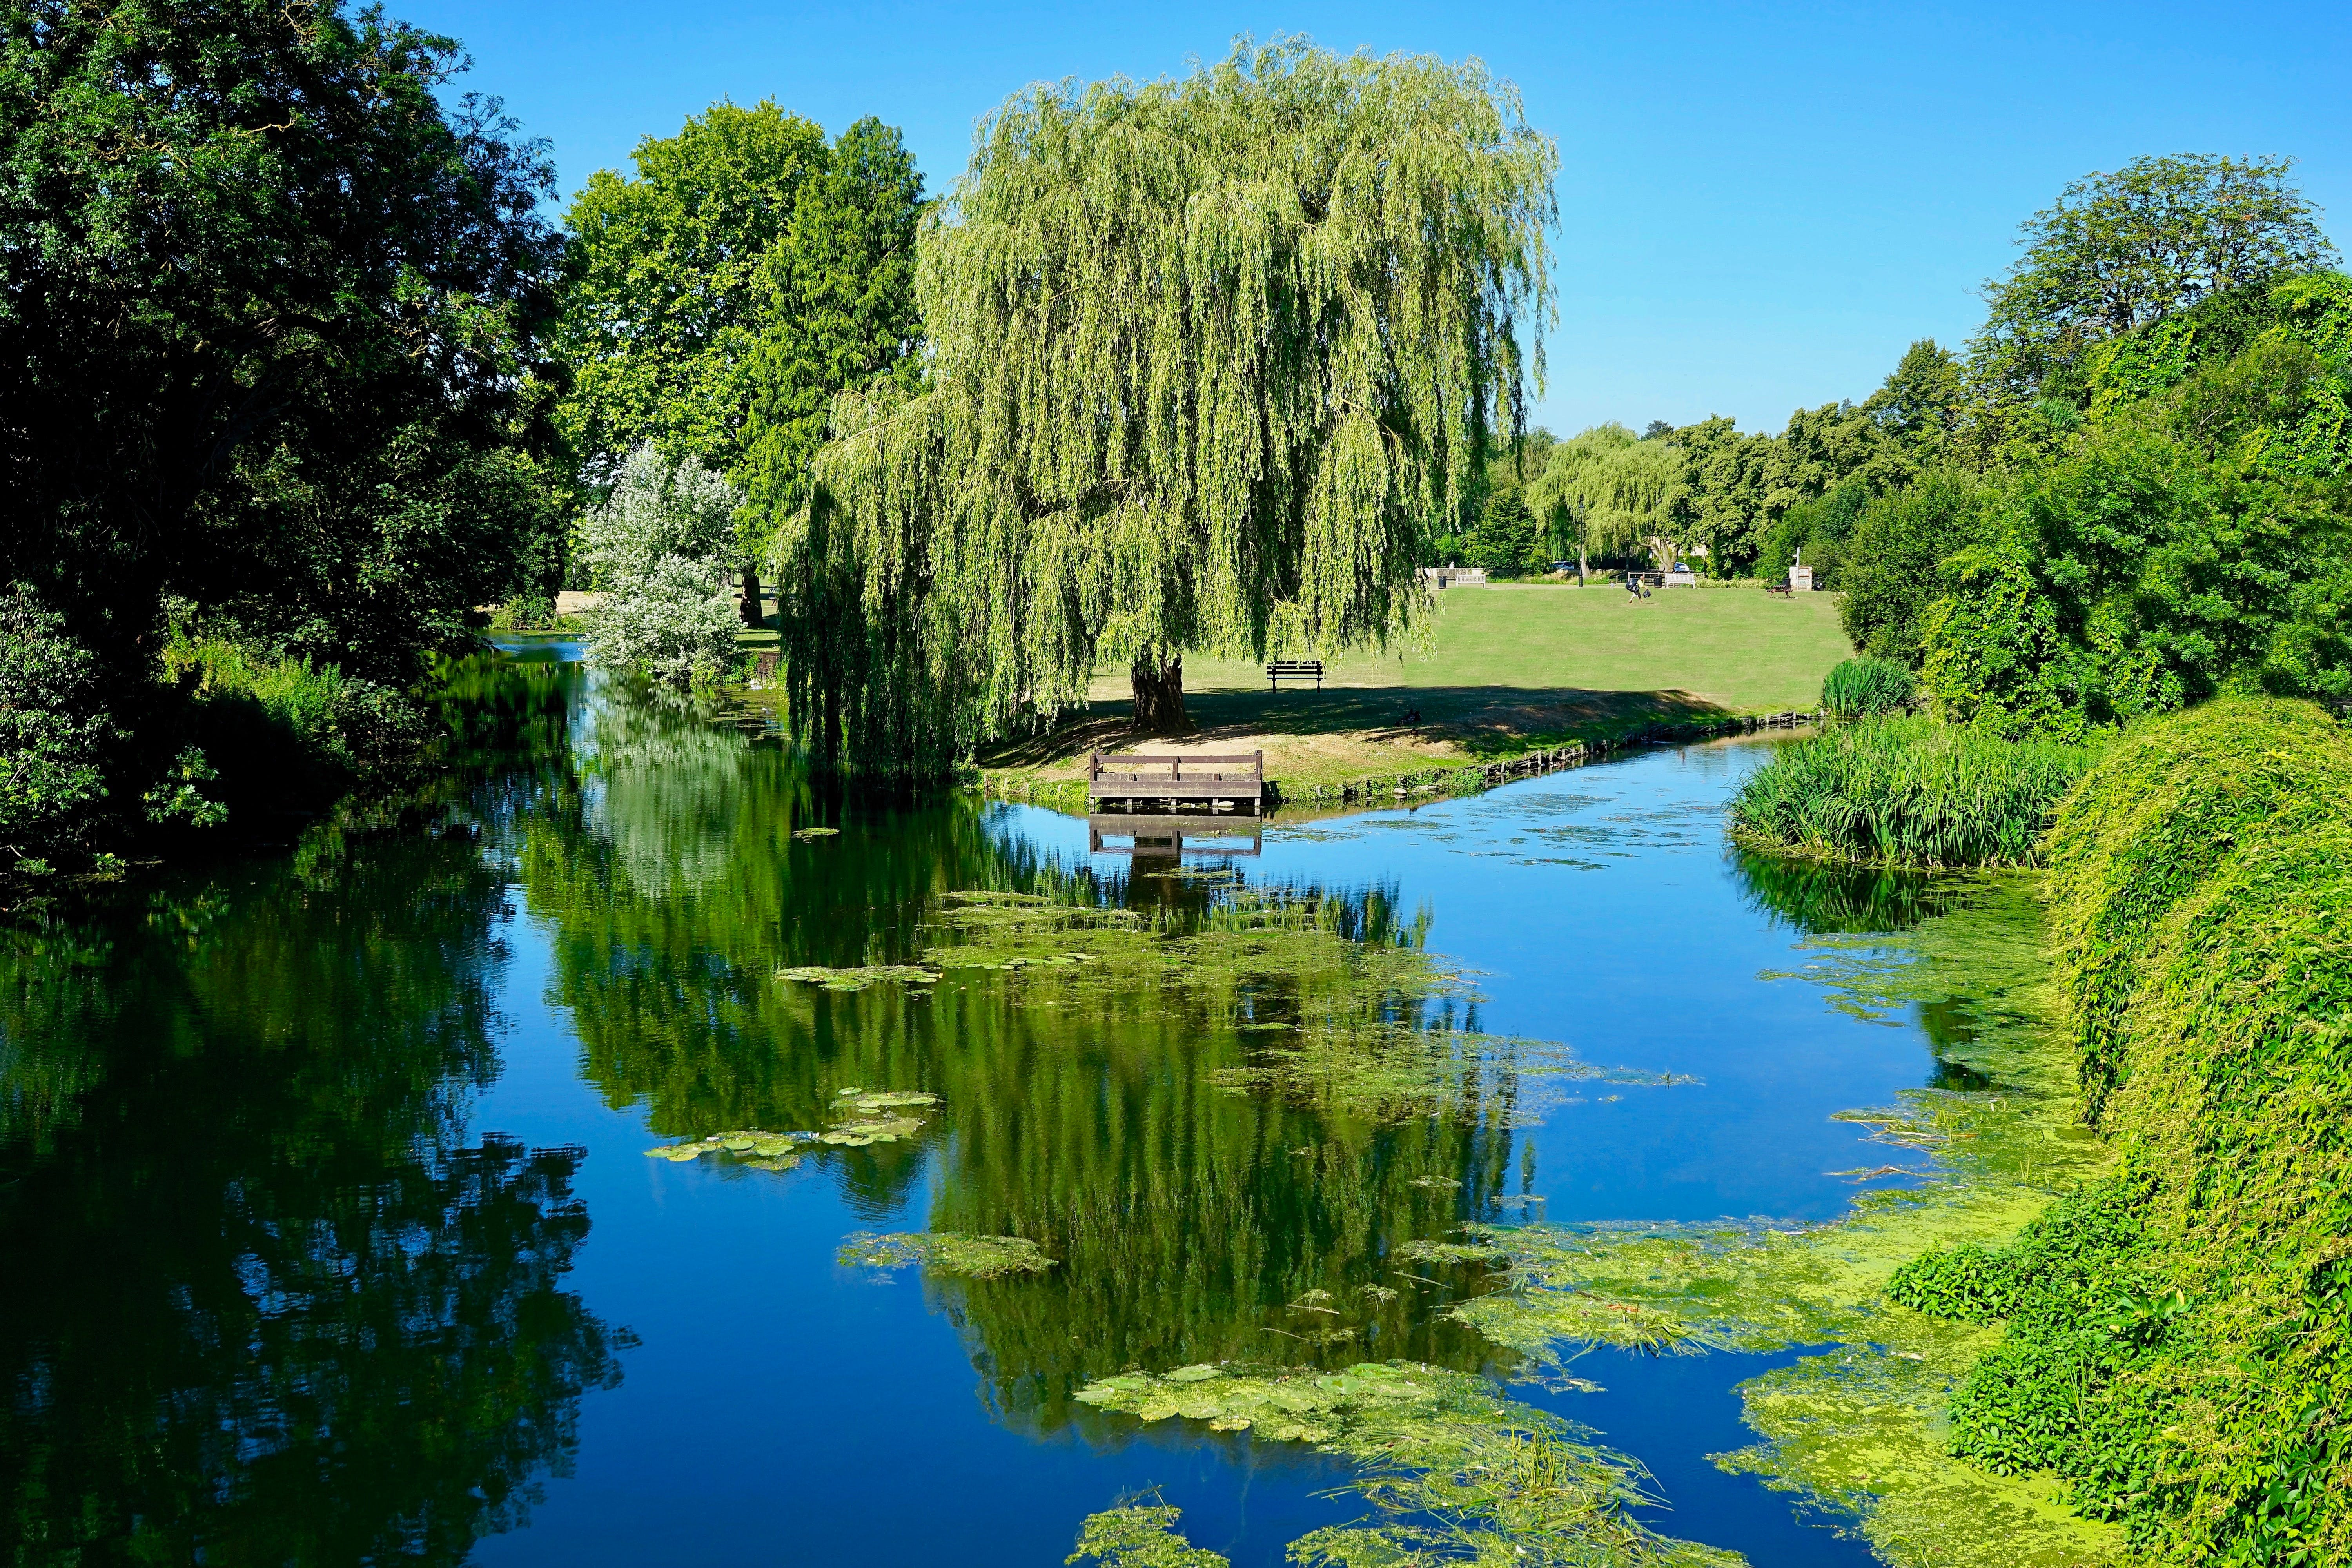 Free stock photo of water, trees, grass, river